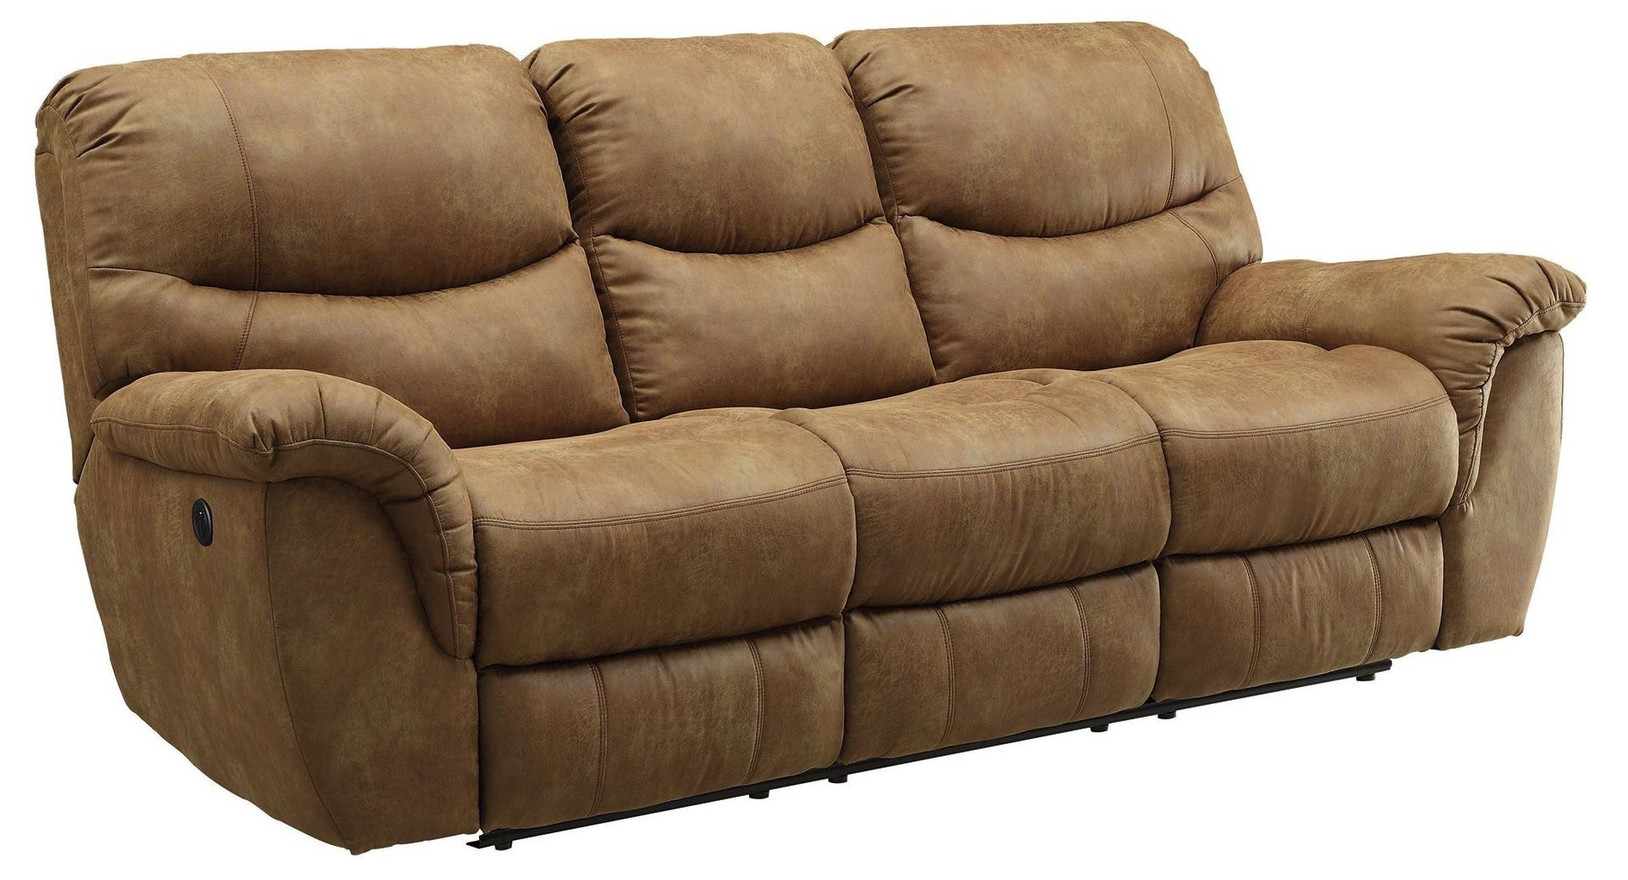 Hancox Power Reclining Sofa.jpg